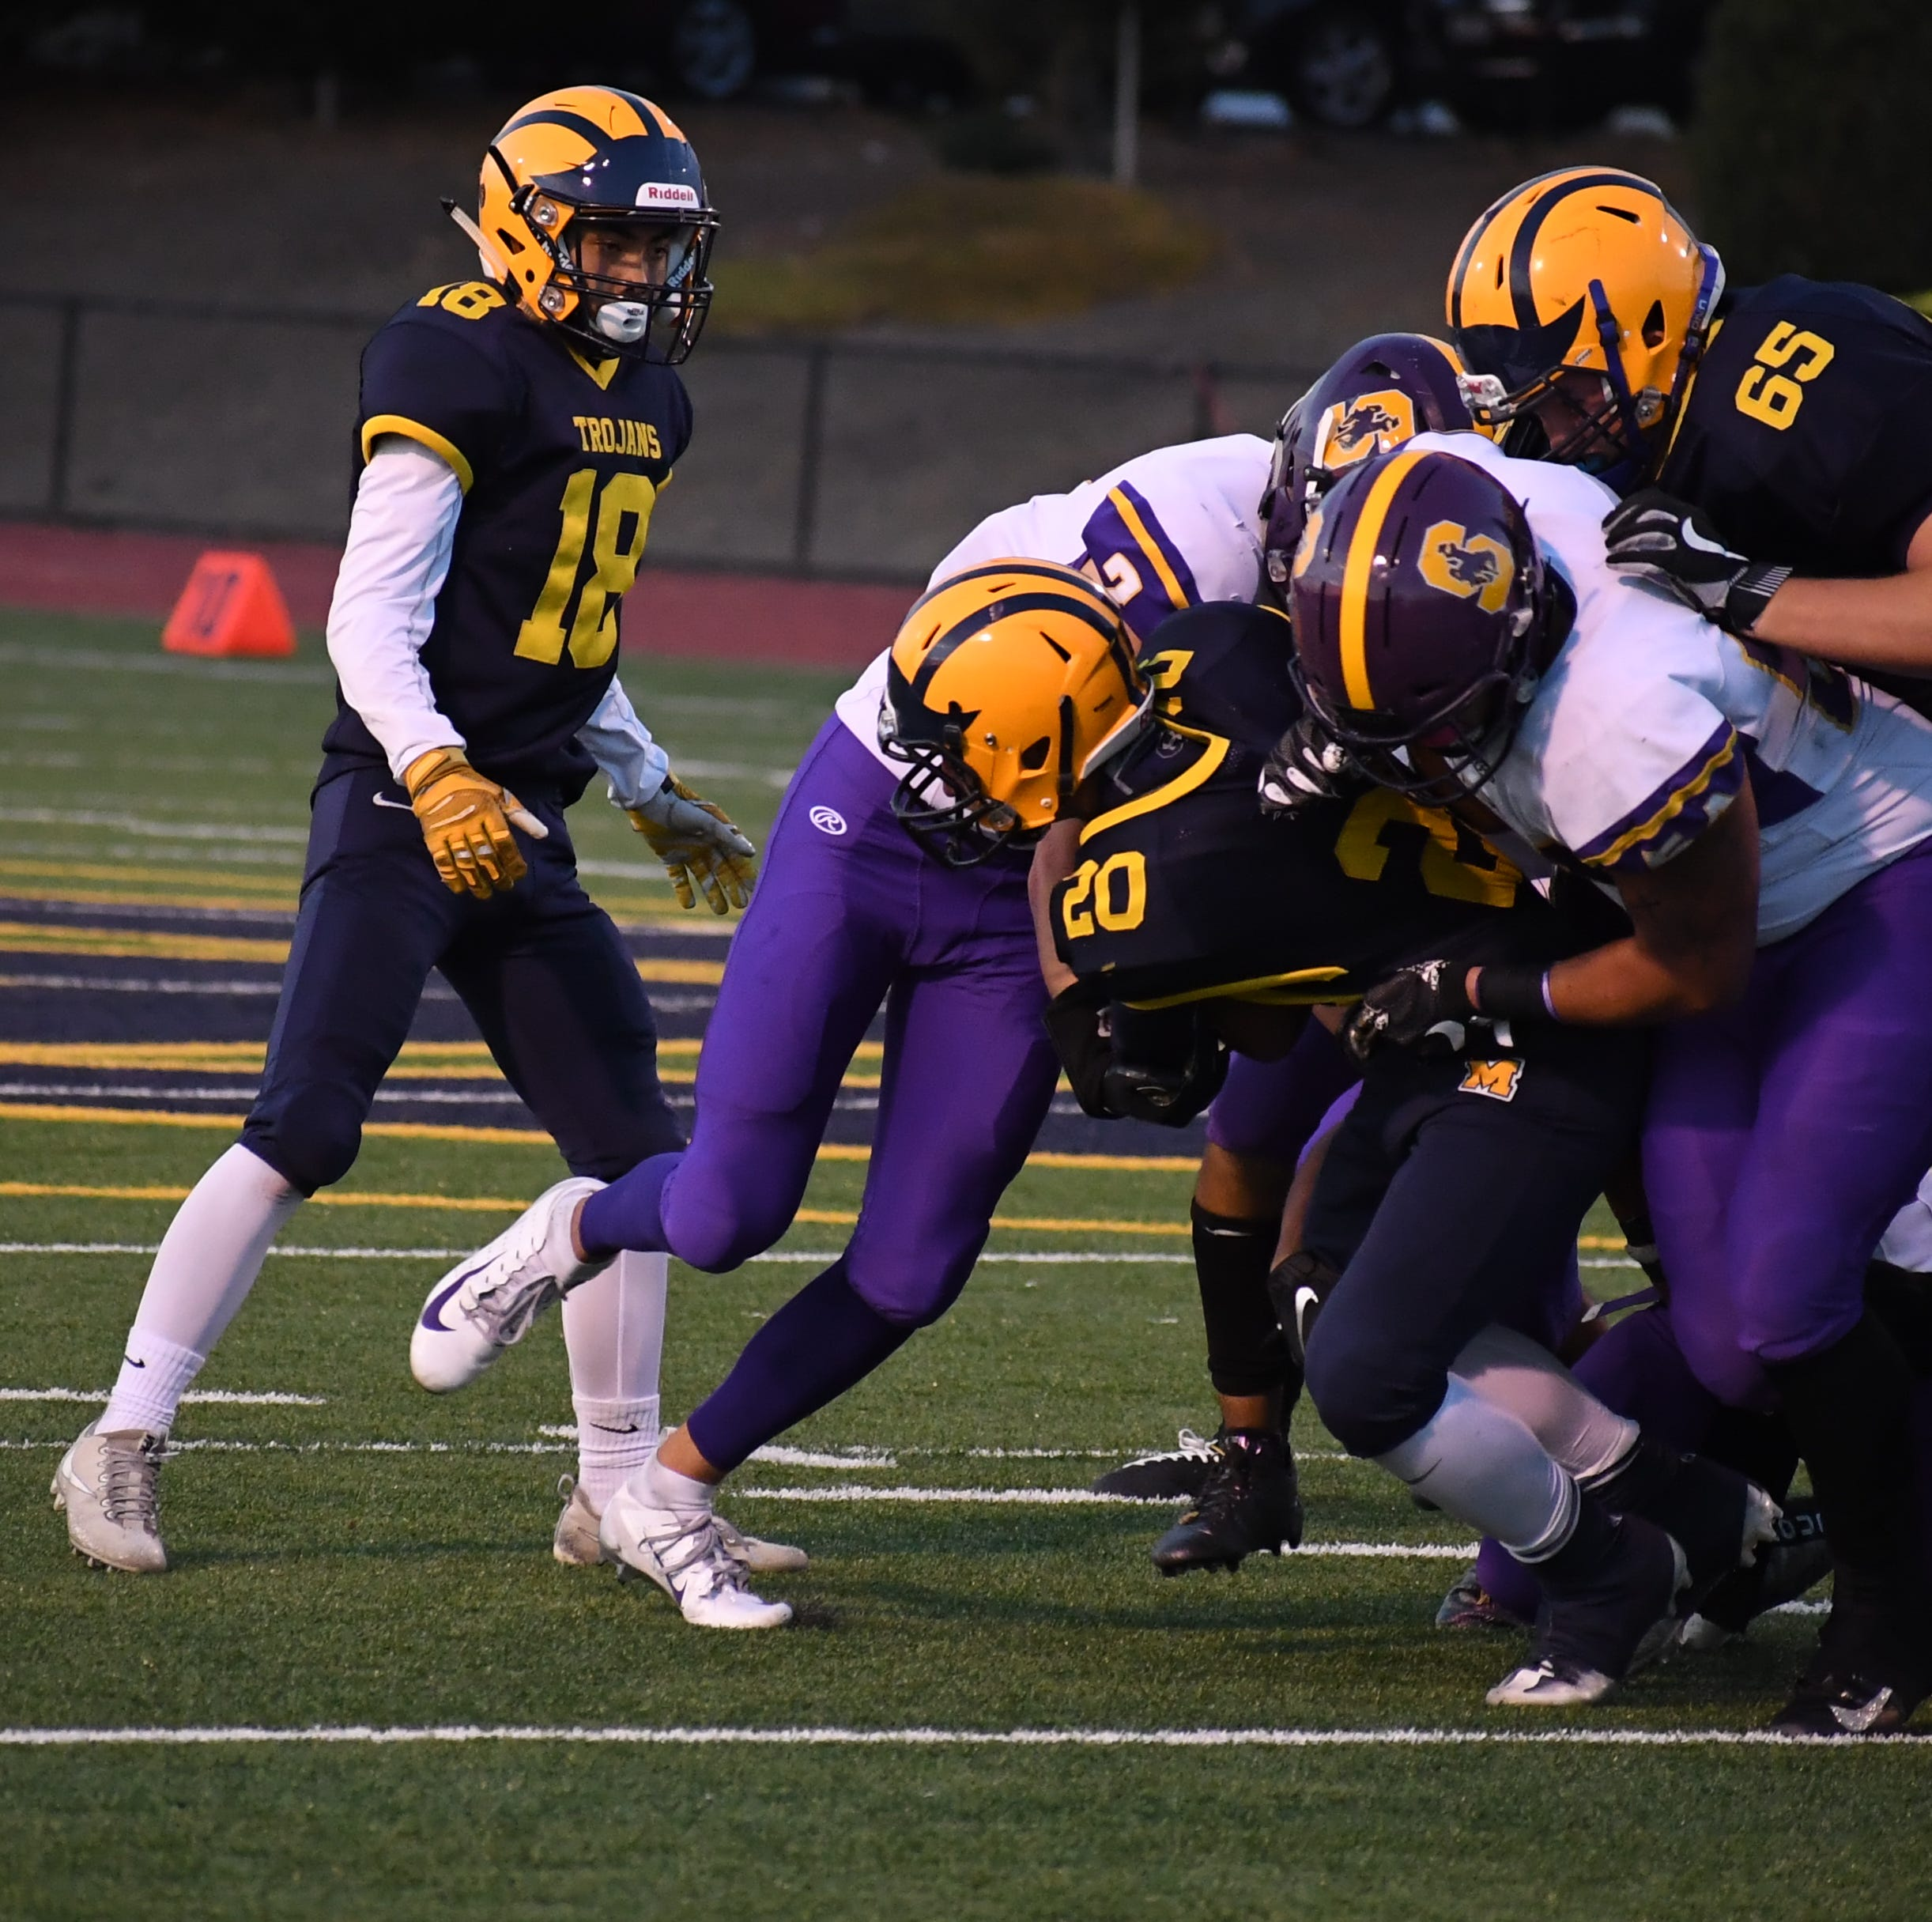 PHOTOS: Salinas vs. Milpitas